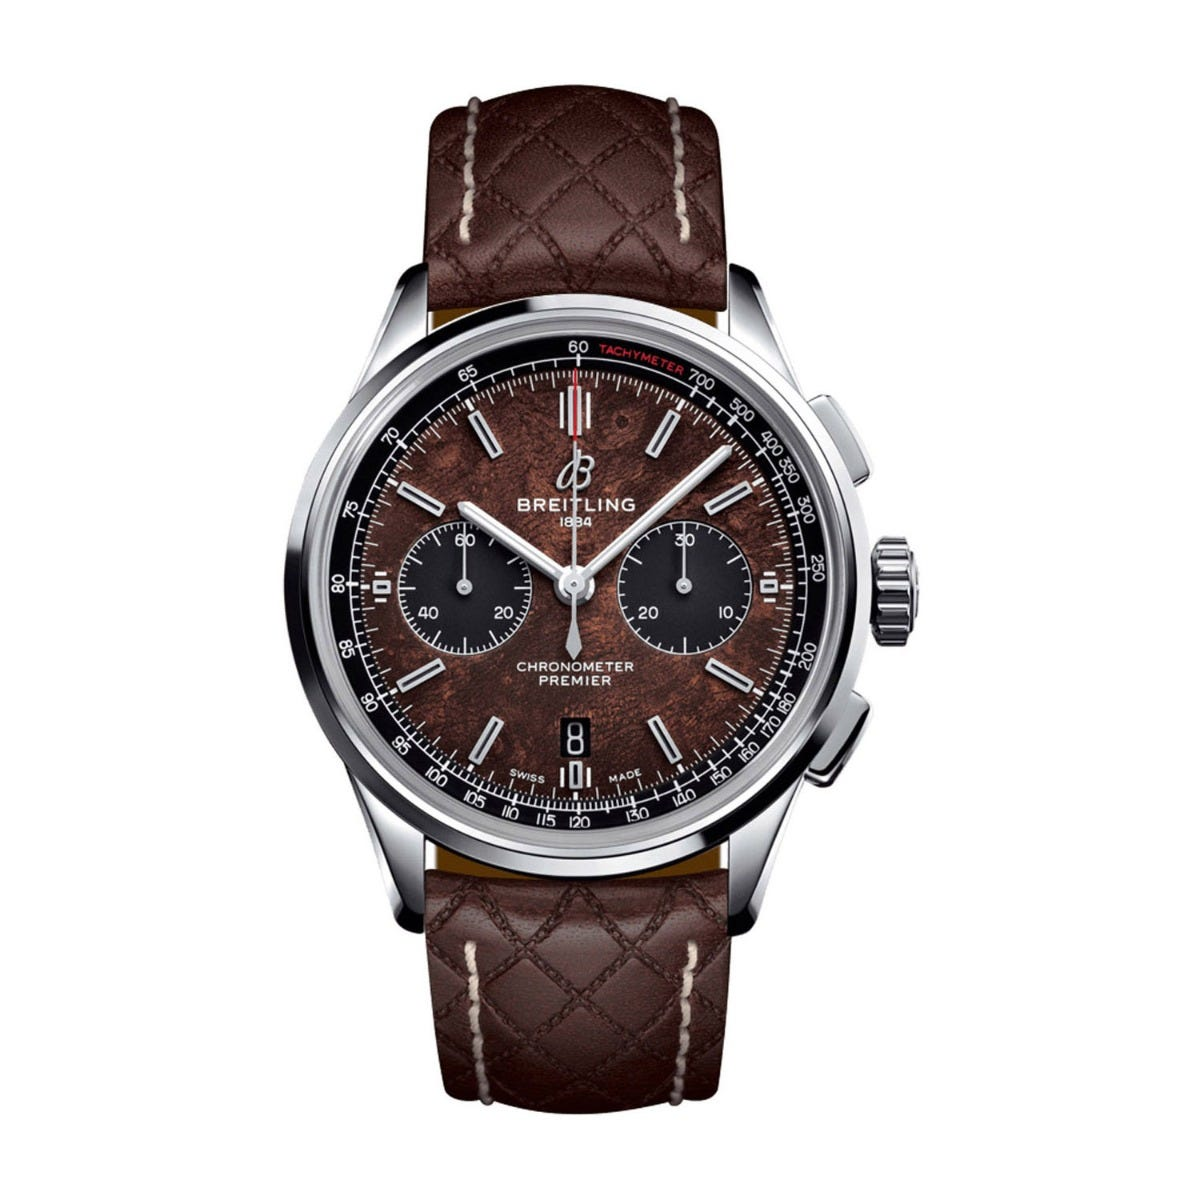 Breitling Premier B01 Chronograph 42 Bentley Centenary Edition 42mm Mens Watch